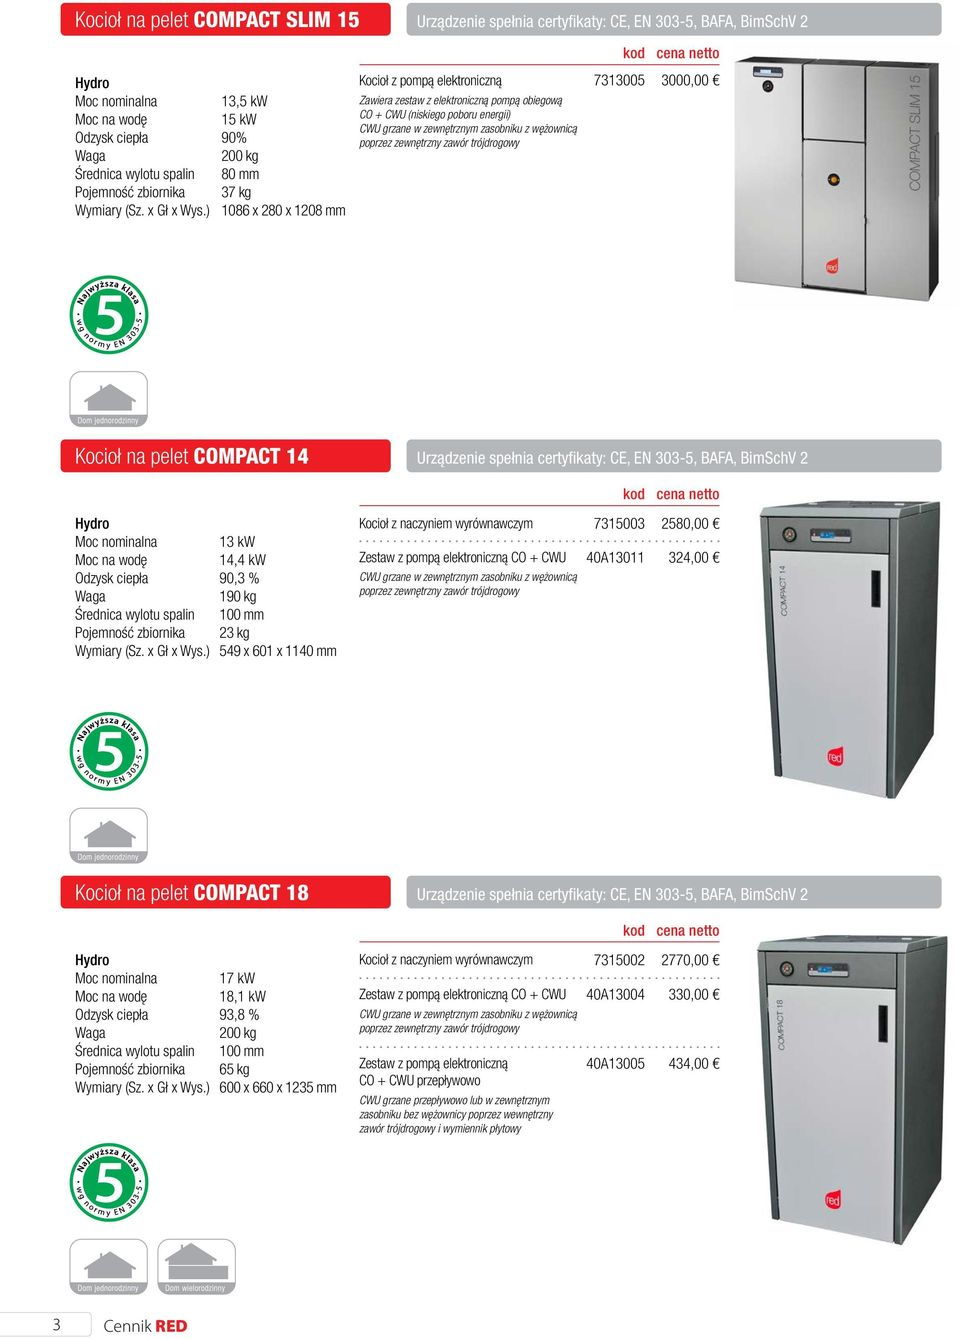 spalin 13 kw 14,4 kw 90,3 % 190 kg 23 kg 549 x 601 x 1140 mm CO + CWU 7315003 40A13011 2580,00 324,00 Kocioł na pelet COMPACT 18